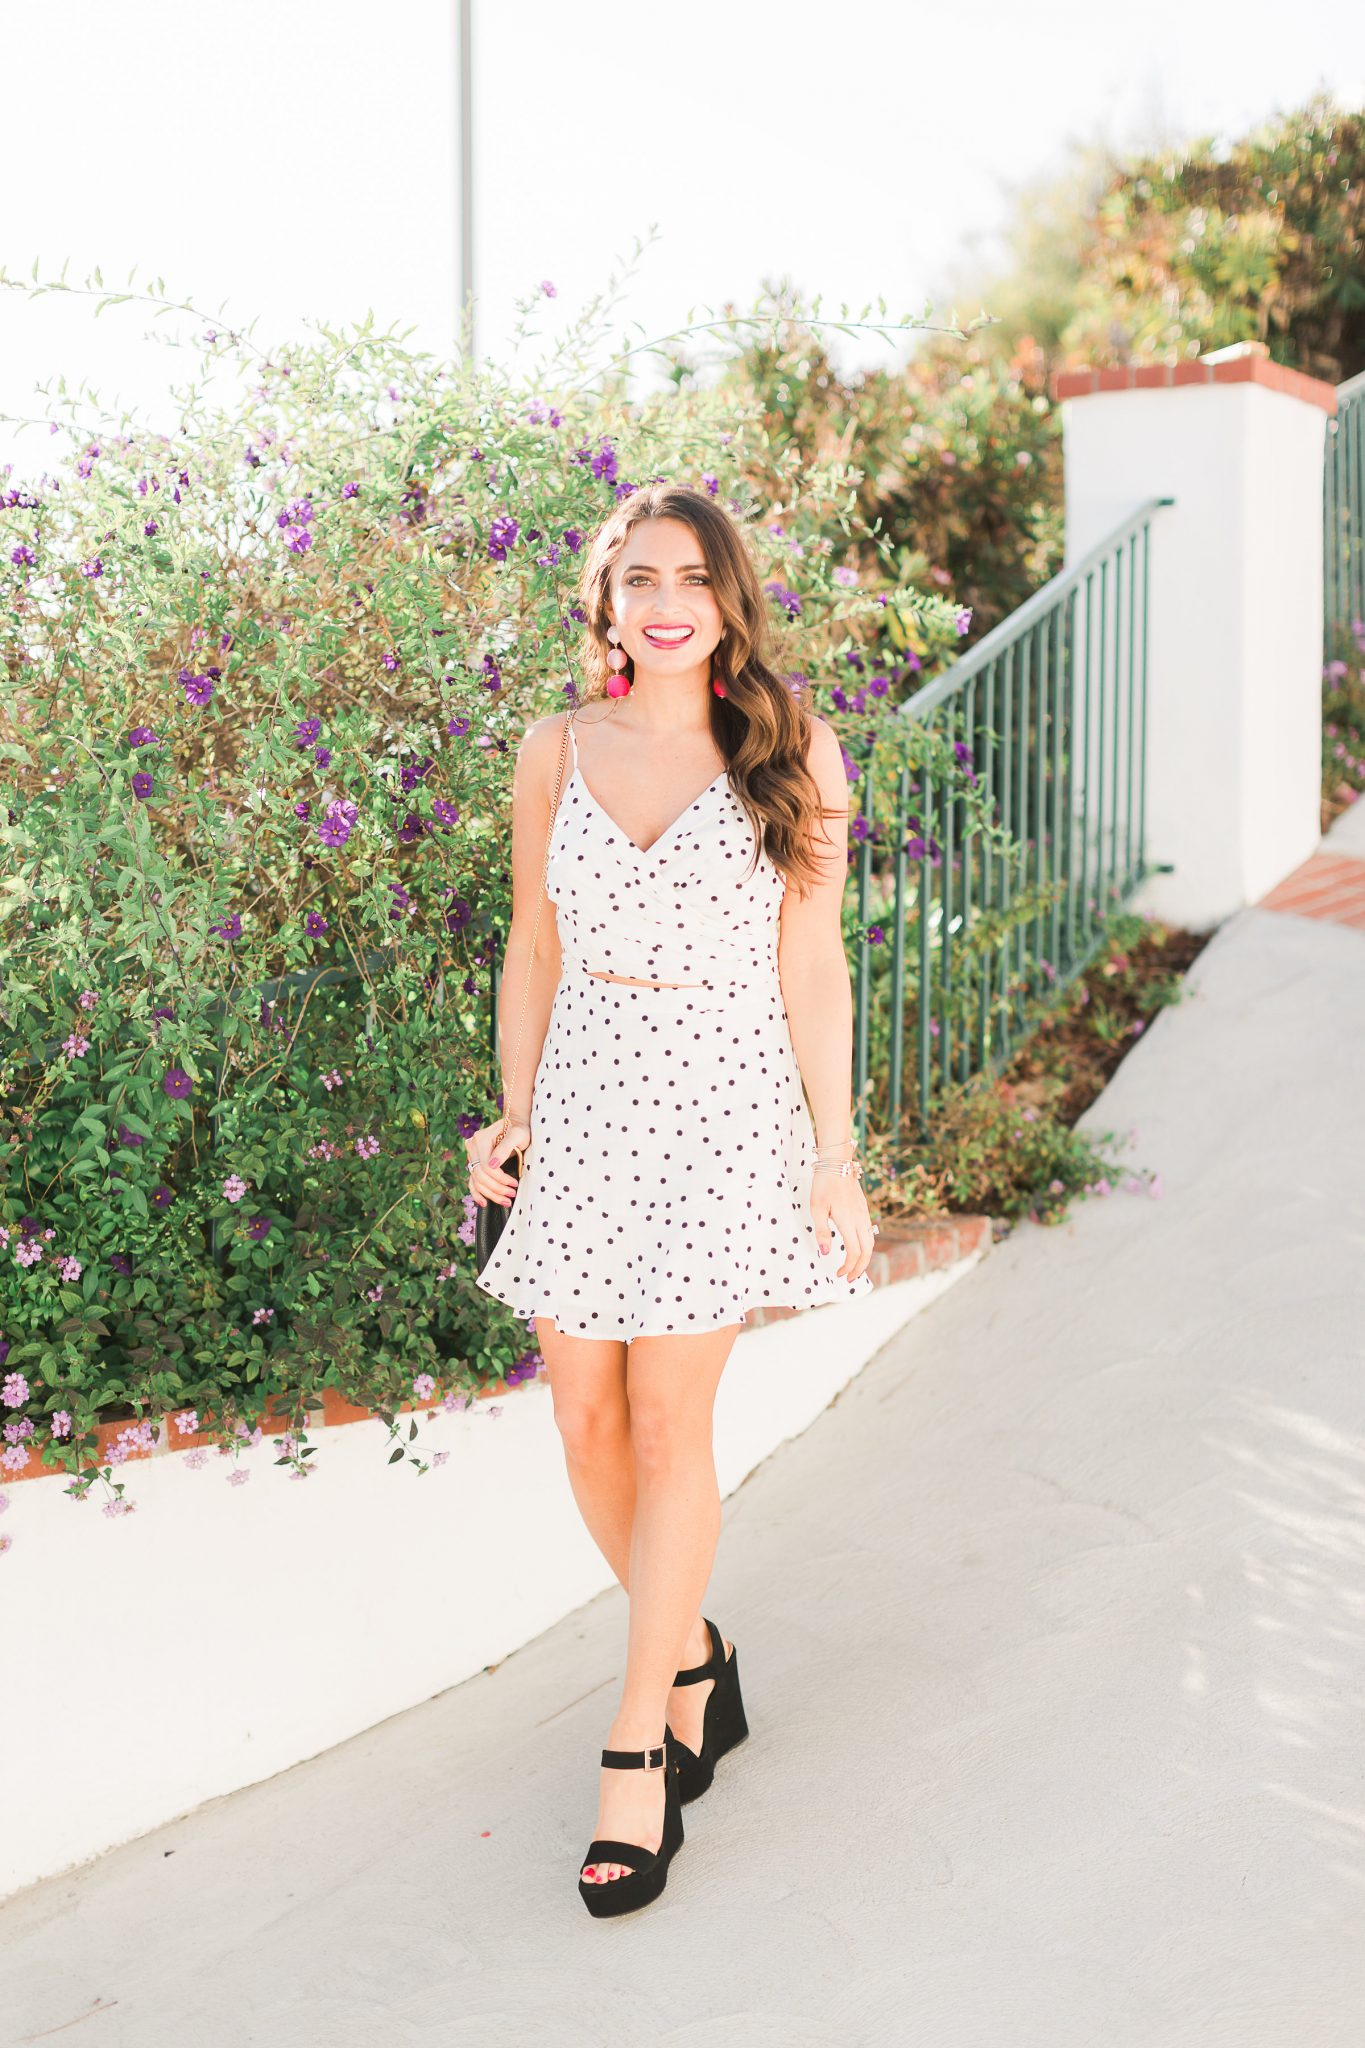 Spring Polka Dot Set - Polka Dot Clothing styled by popular Orange County fashion blogger, Maxie Elle